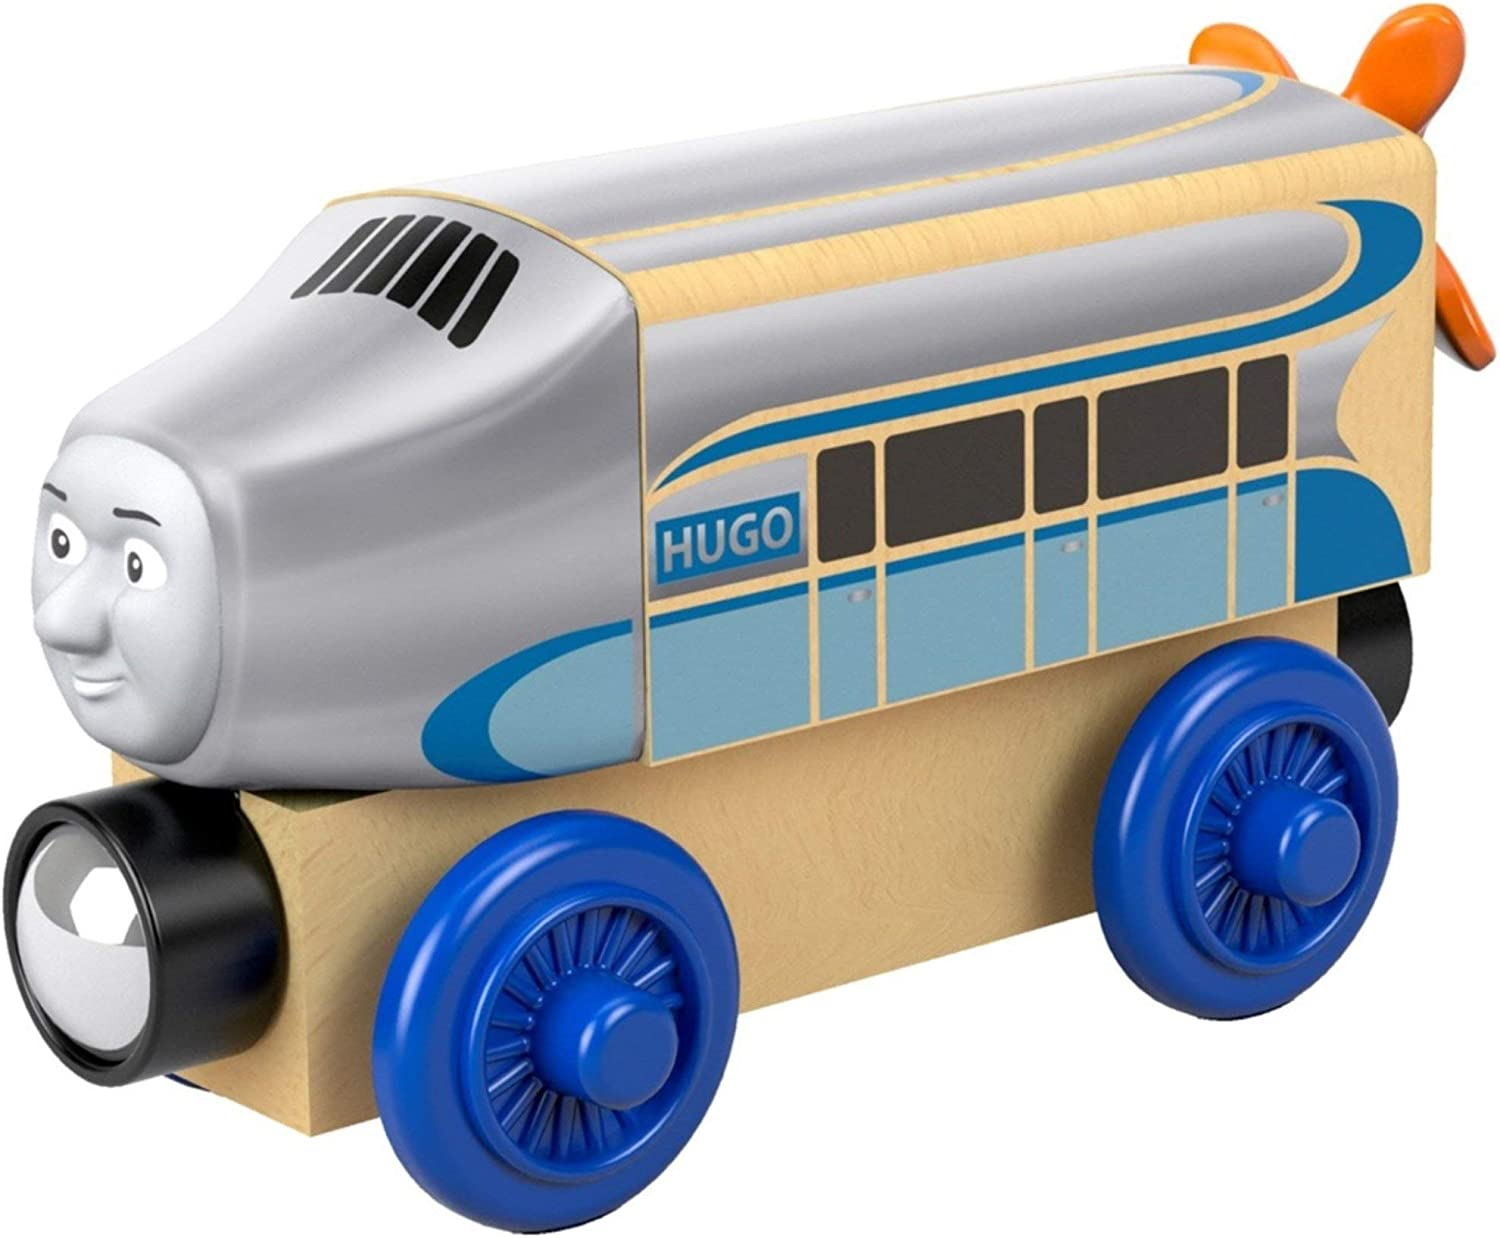 Hugo FHM37 NEW Fisher-Price Thomas /& Friends Wooden Engine